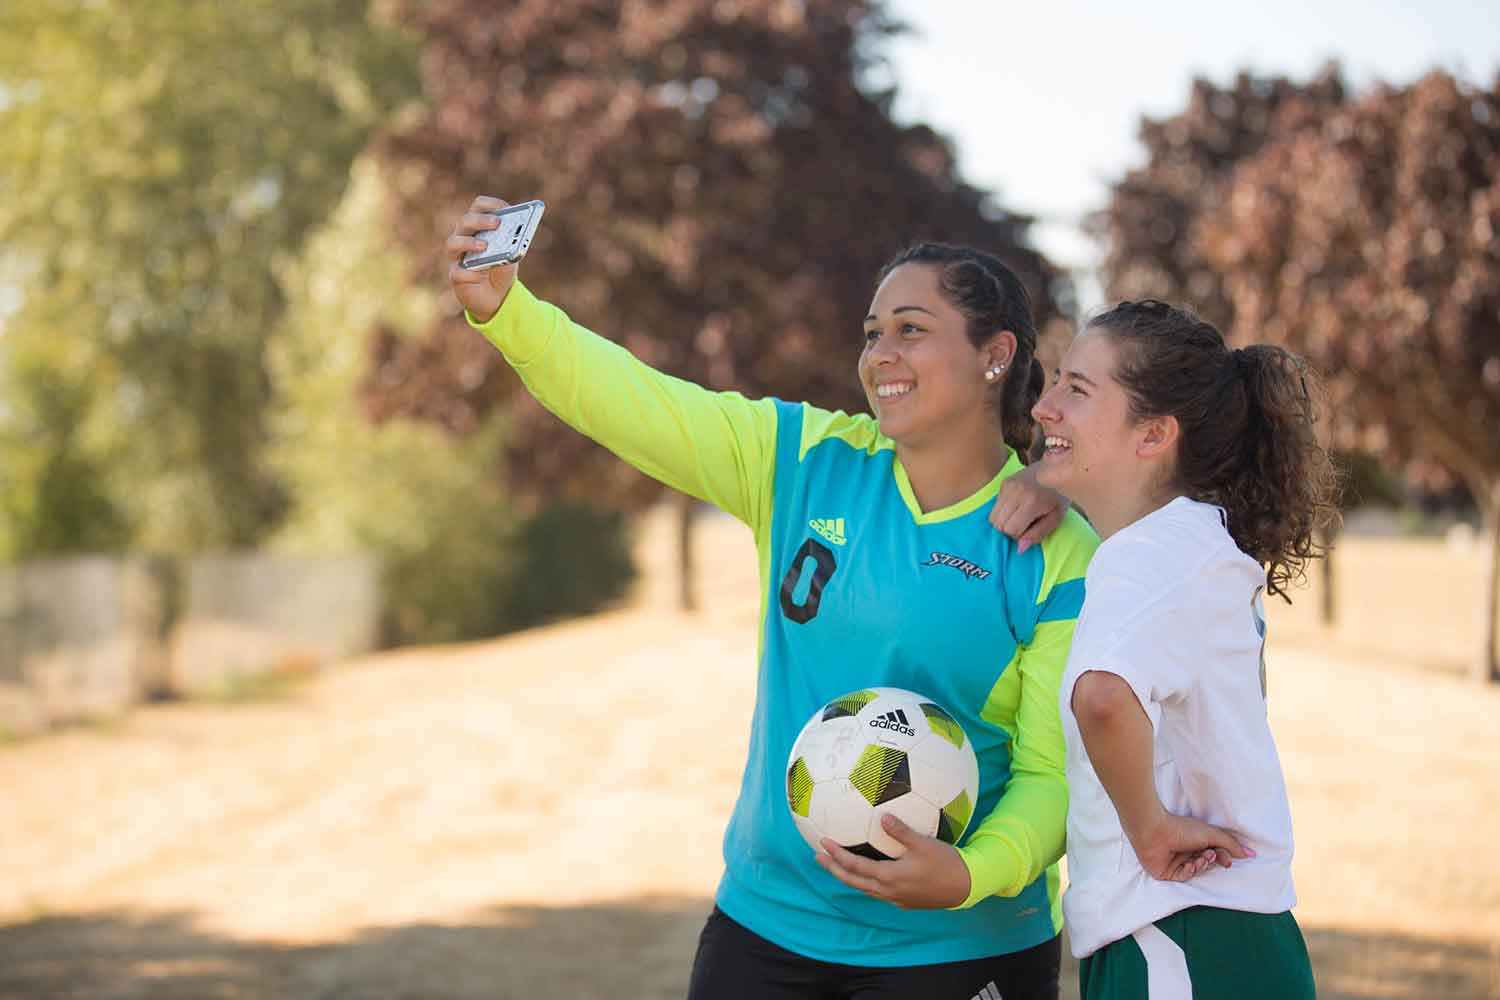 Two women soccer players taking a selfie